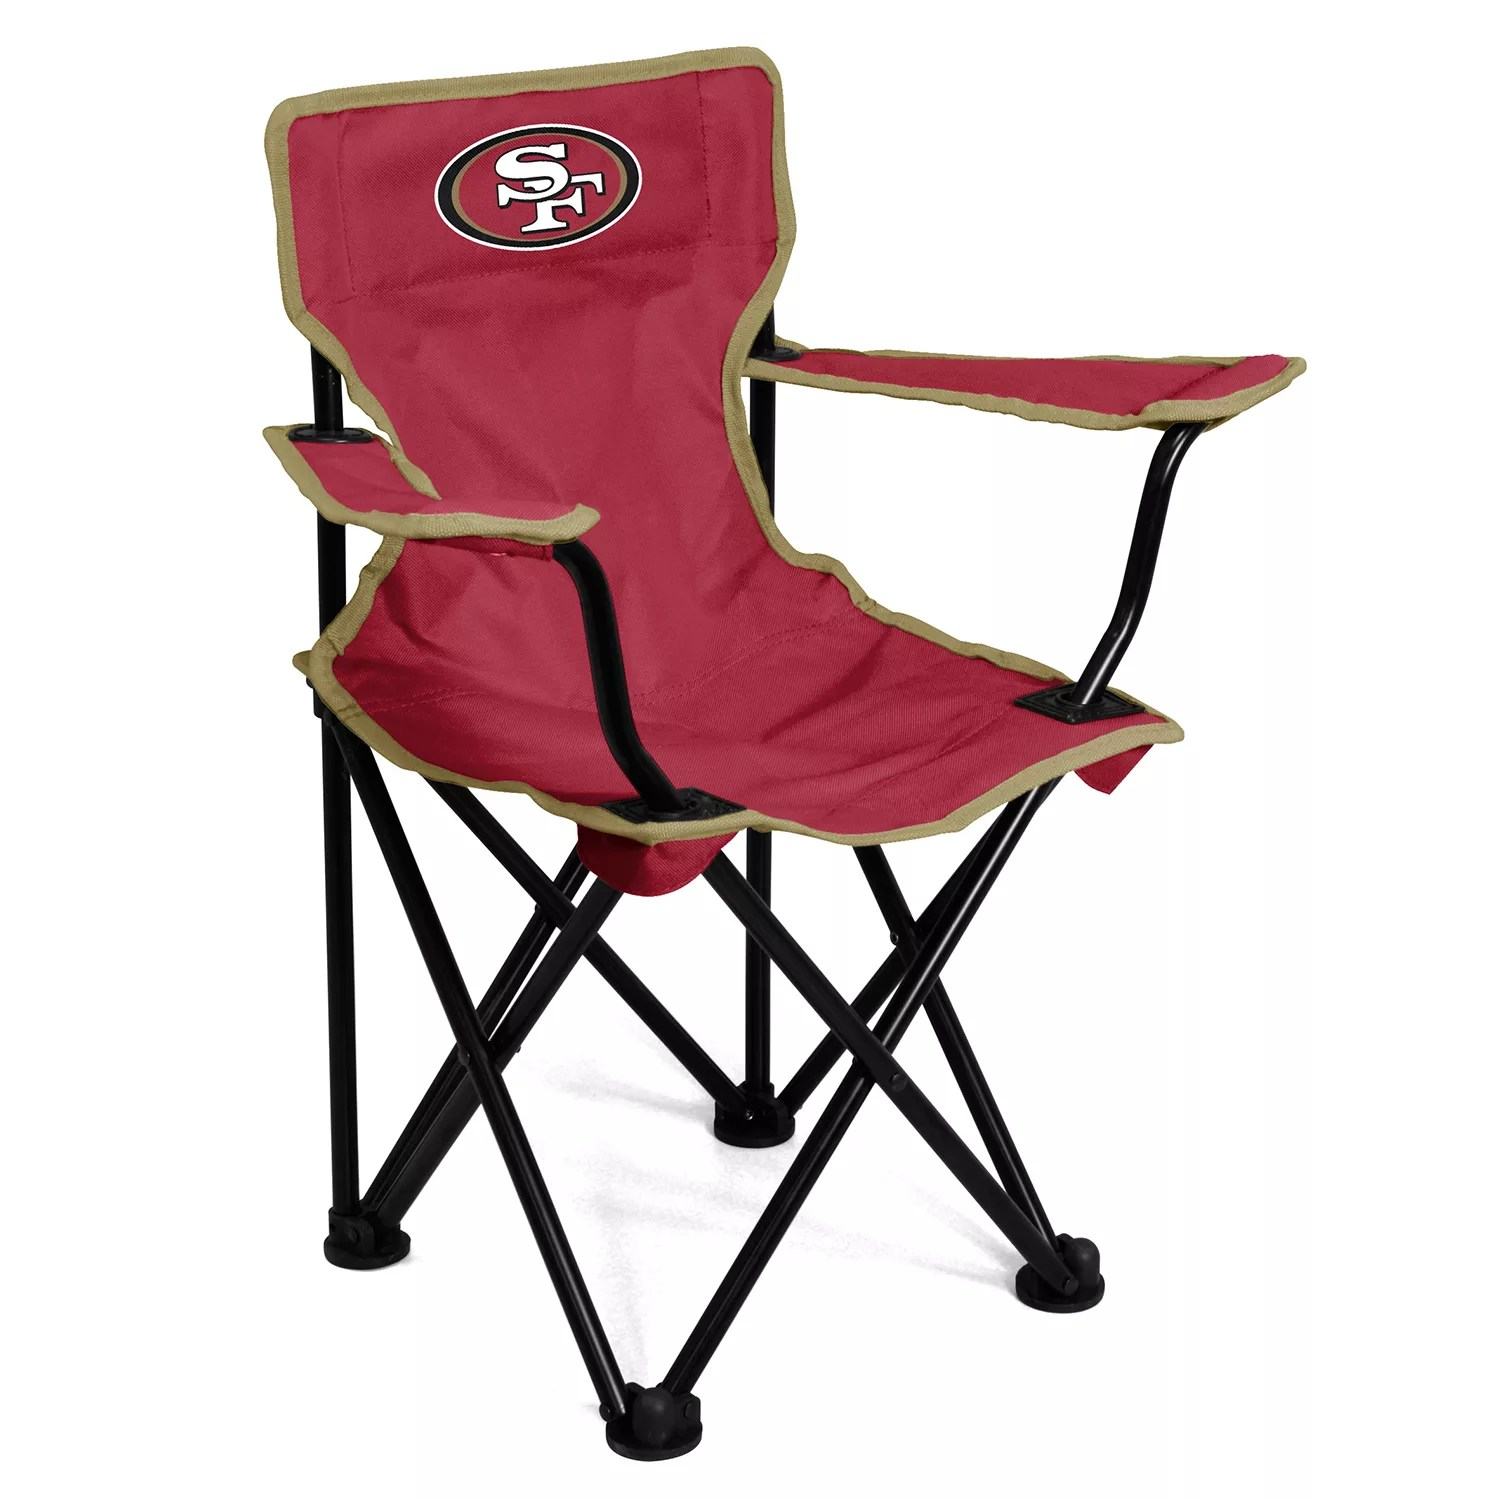 Kohls Folding Chairs Logo Brands San Francisco 49ers Toddler Portable Folding Chair